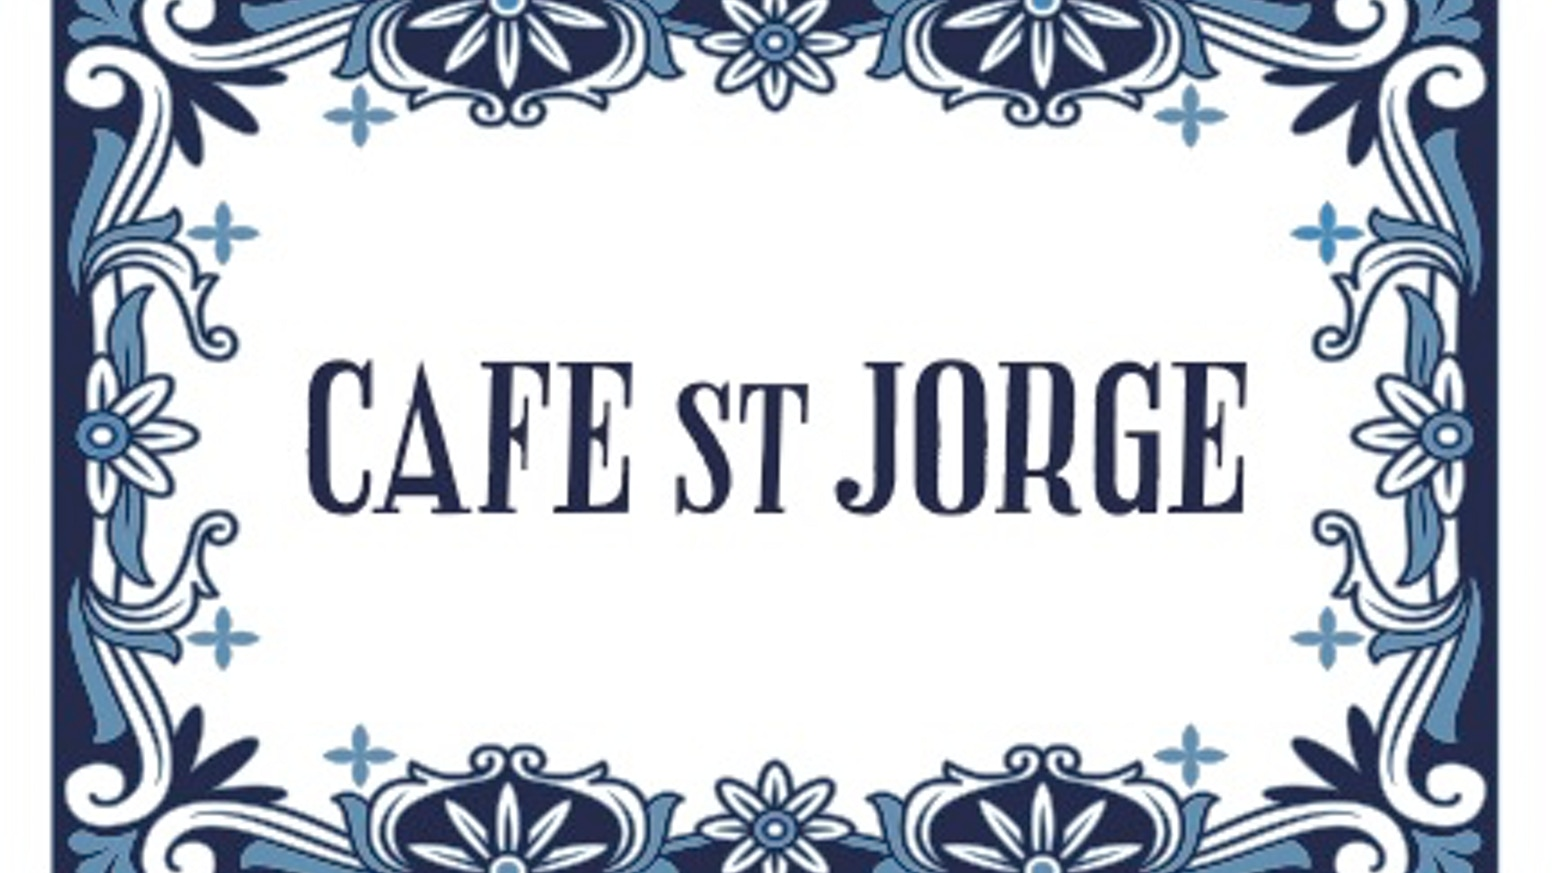 Cafe St. Jorge is a rad cafe launching in San Francisco in the summer of 2013.